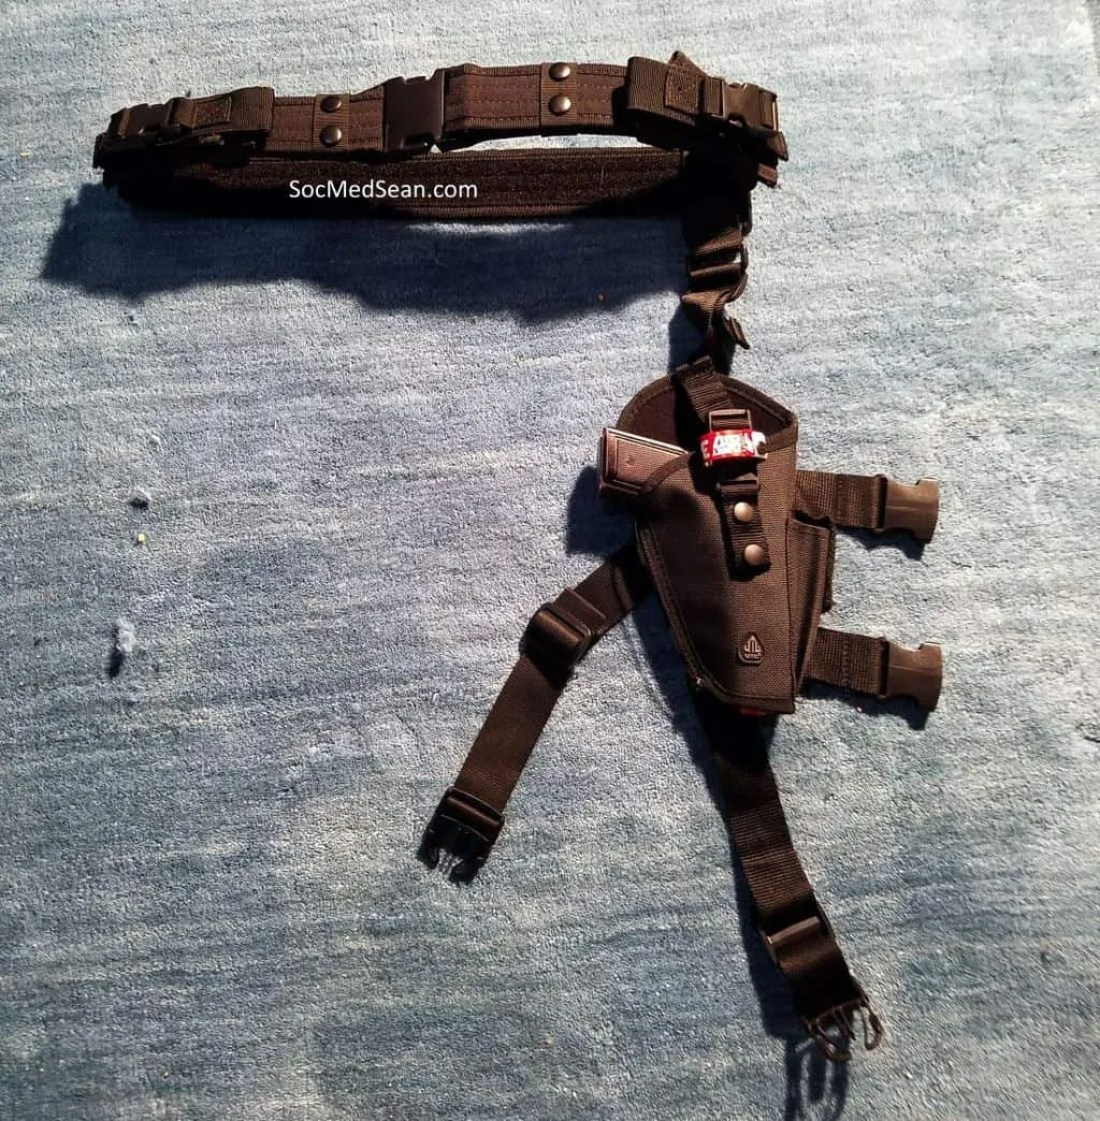 This utility belt and leg holster combo are comfortable and allow for the pistol to be secured per con prop rules